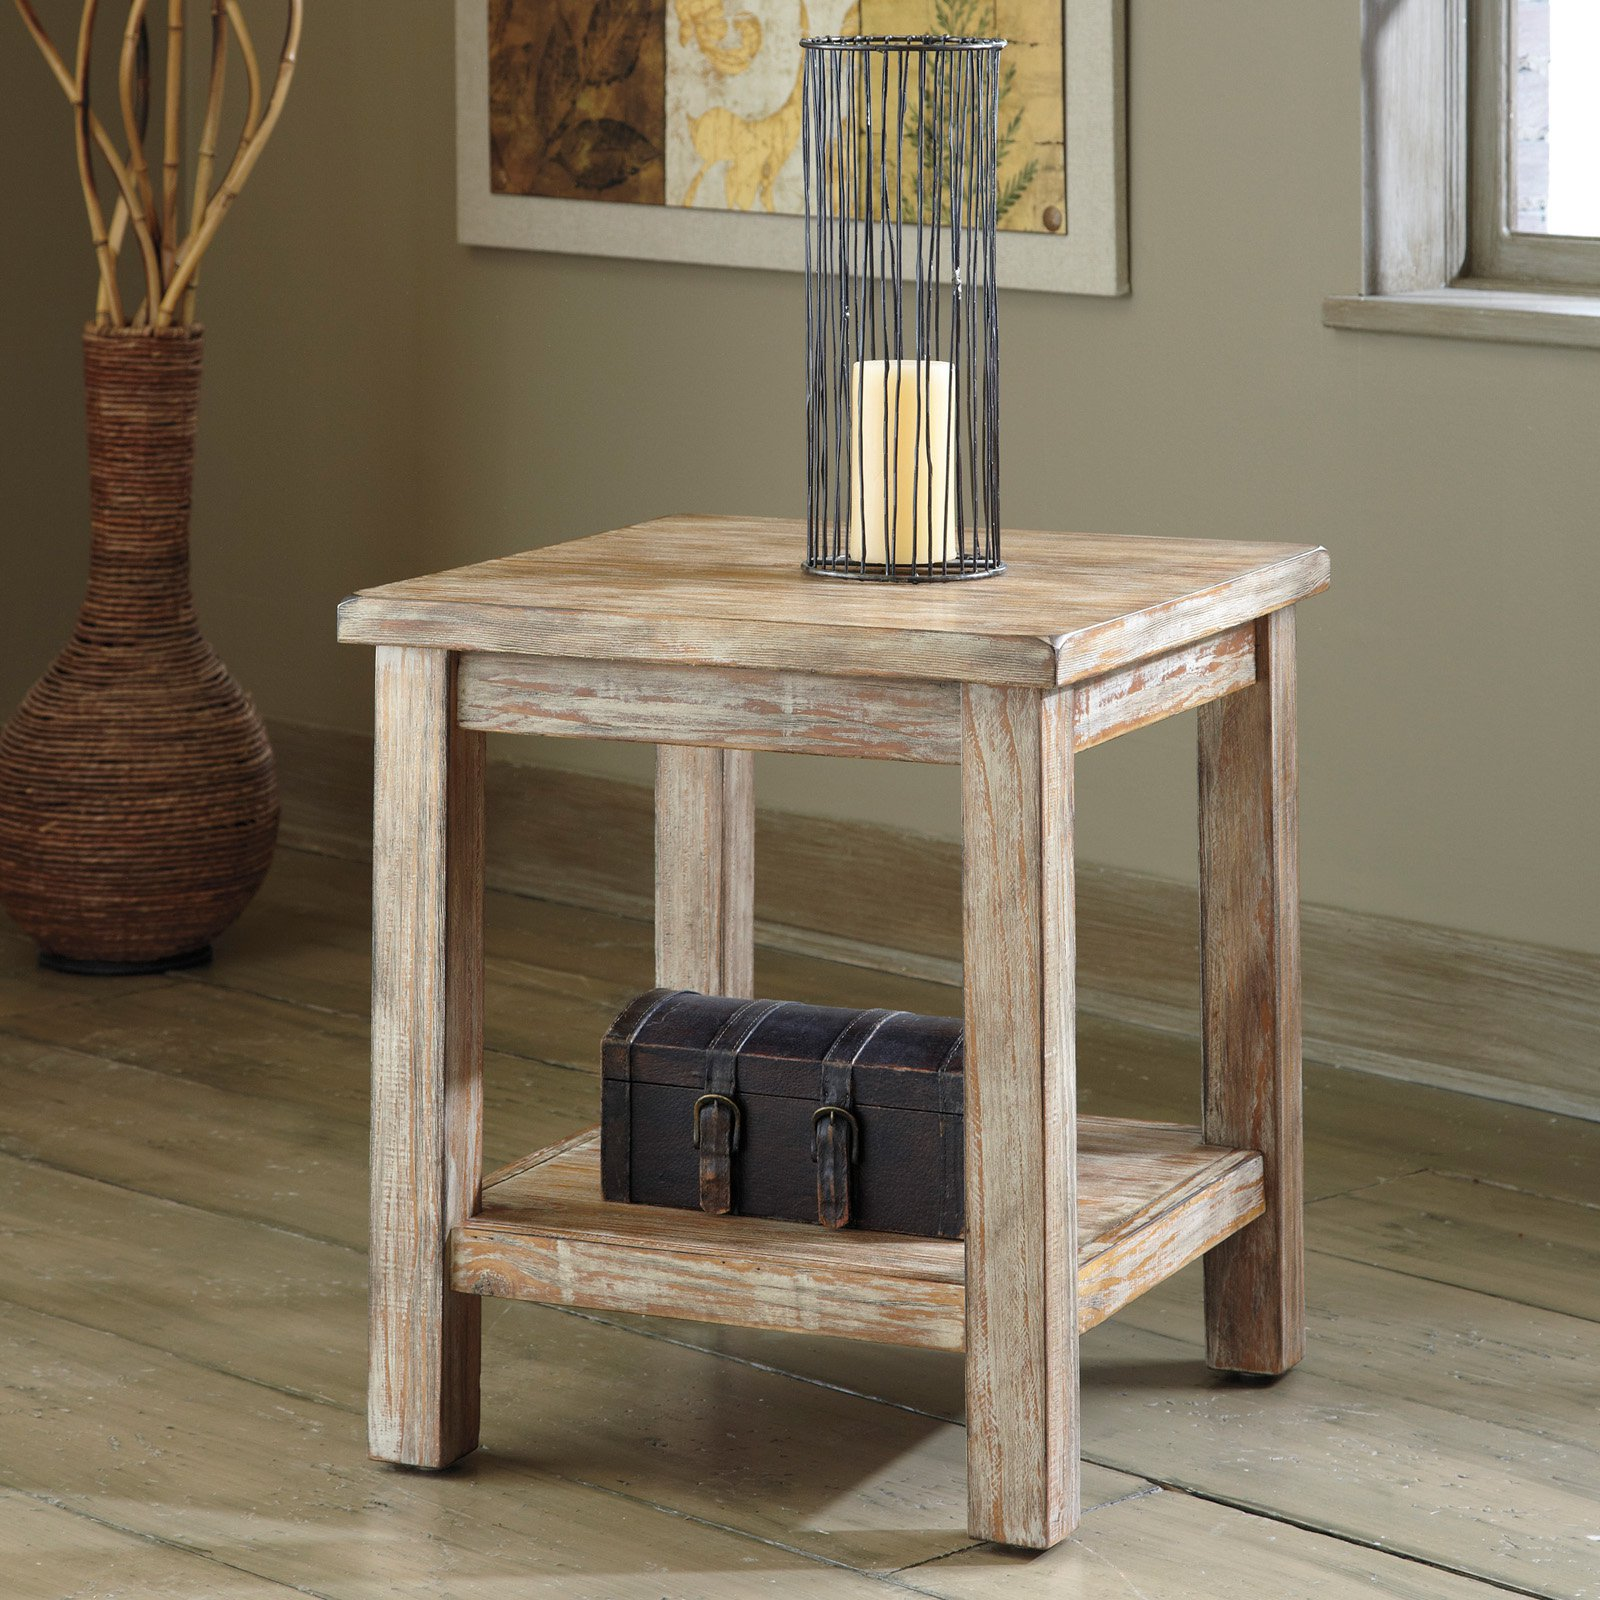 Signature Design By Ashley Rustic Accents Bisque Chair Side End Table Walmart Com